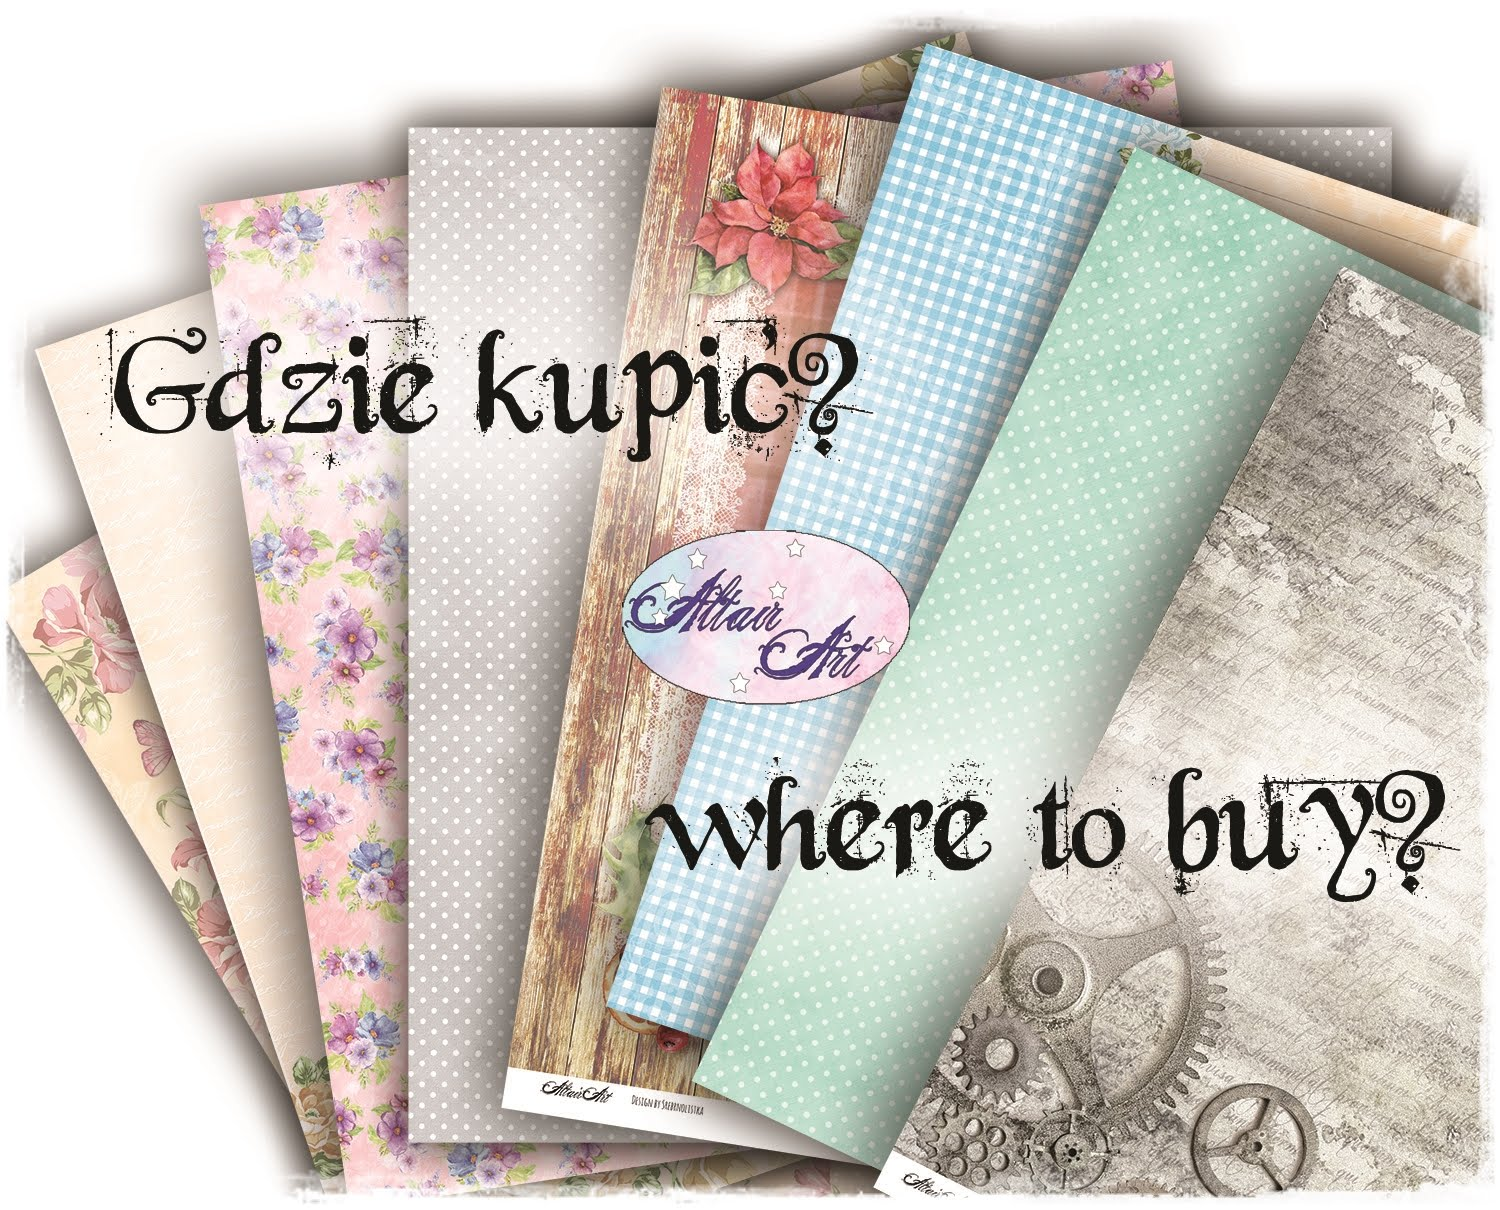 Gdzie kupić || Where to buy